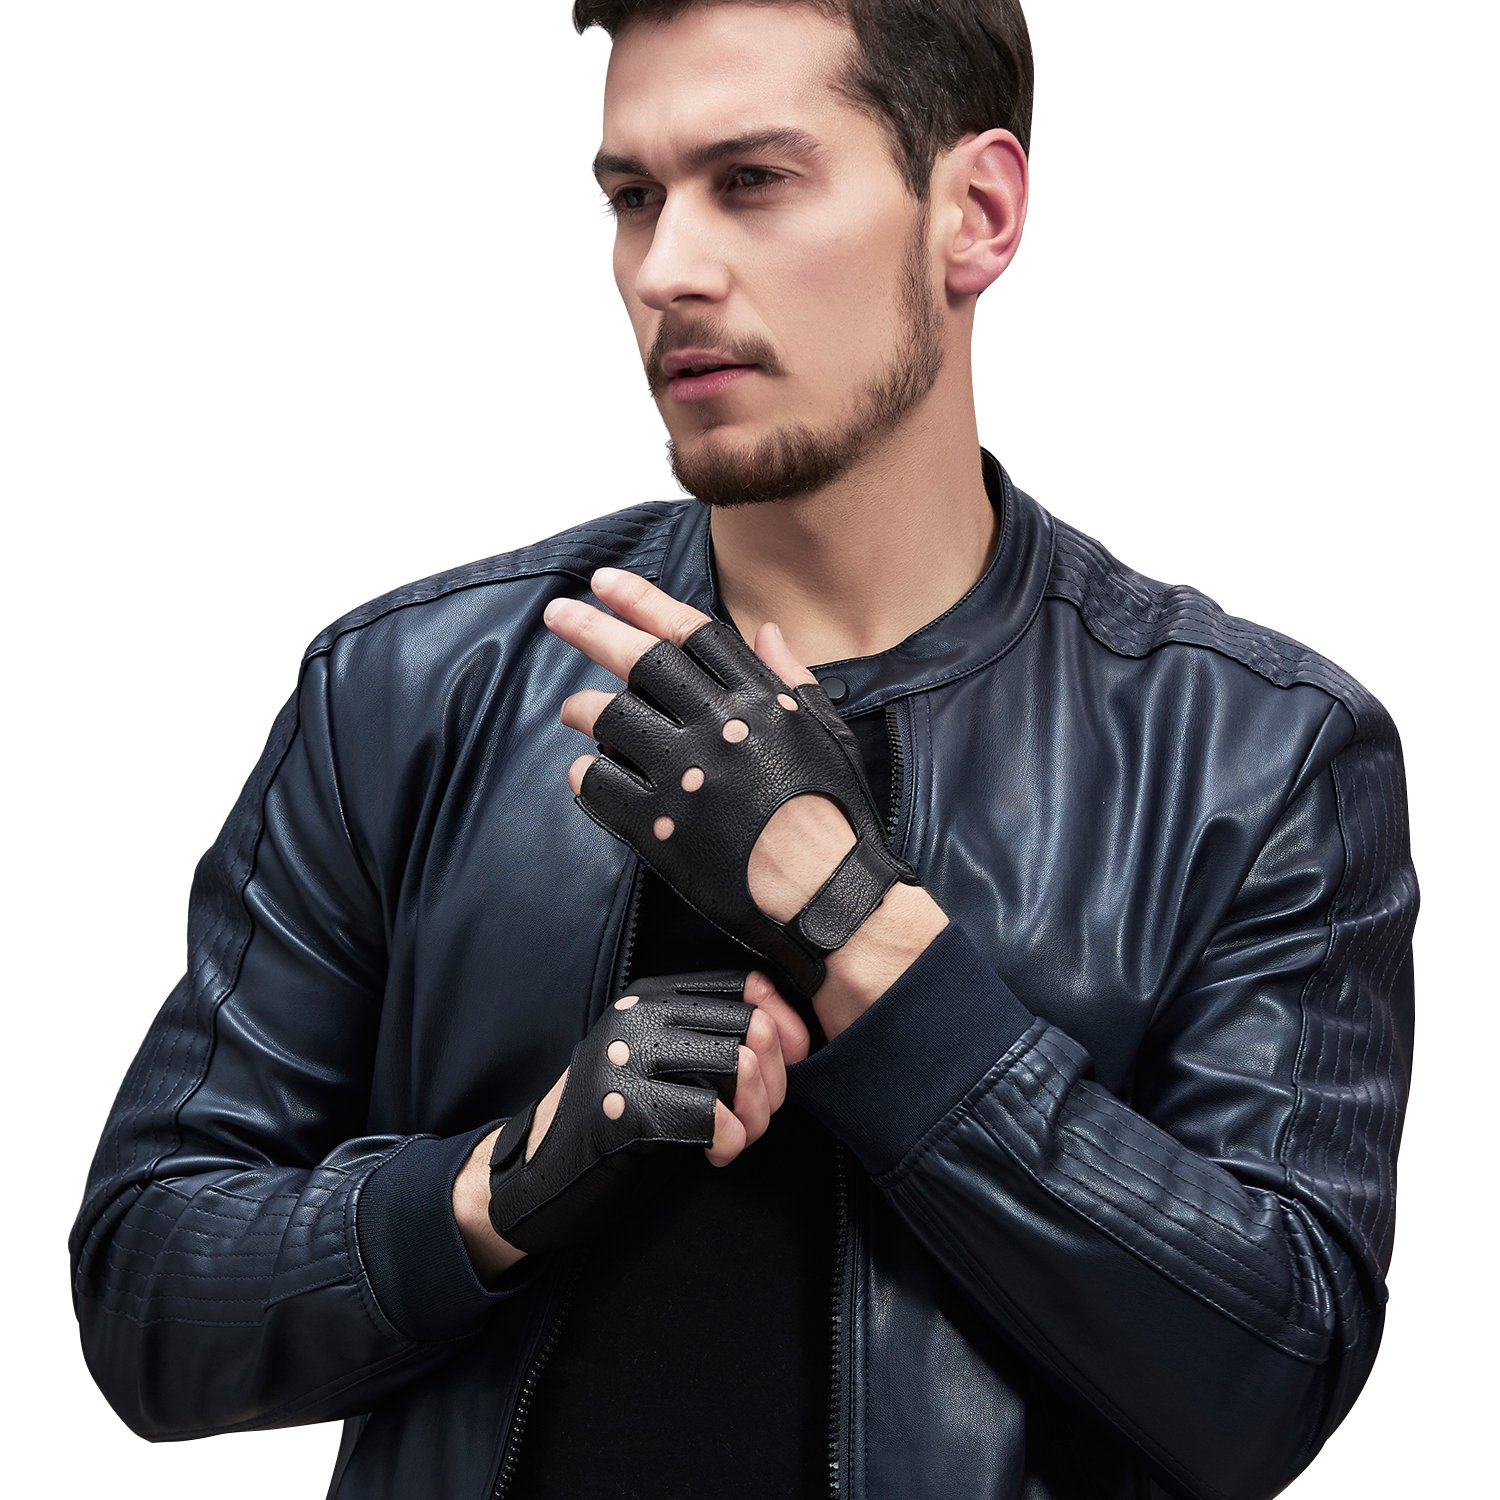 GSG Mens Perforated Knuckle Fingerless Motorcycle Gloves Black Deerskin Half Finger Driving Gloves Backless Nice Gifts 9.5